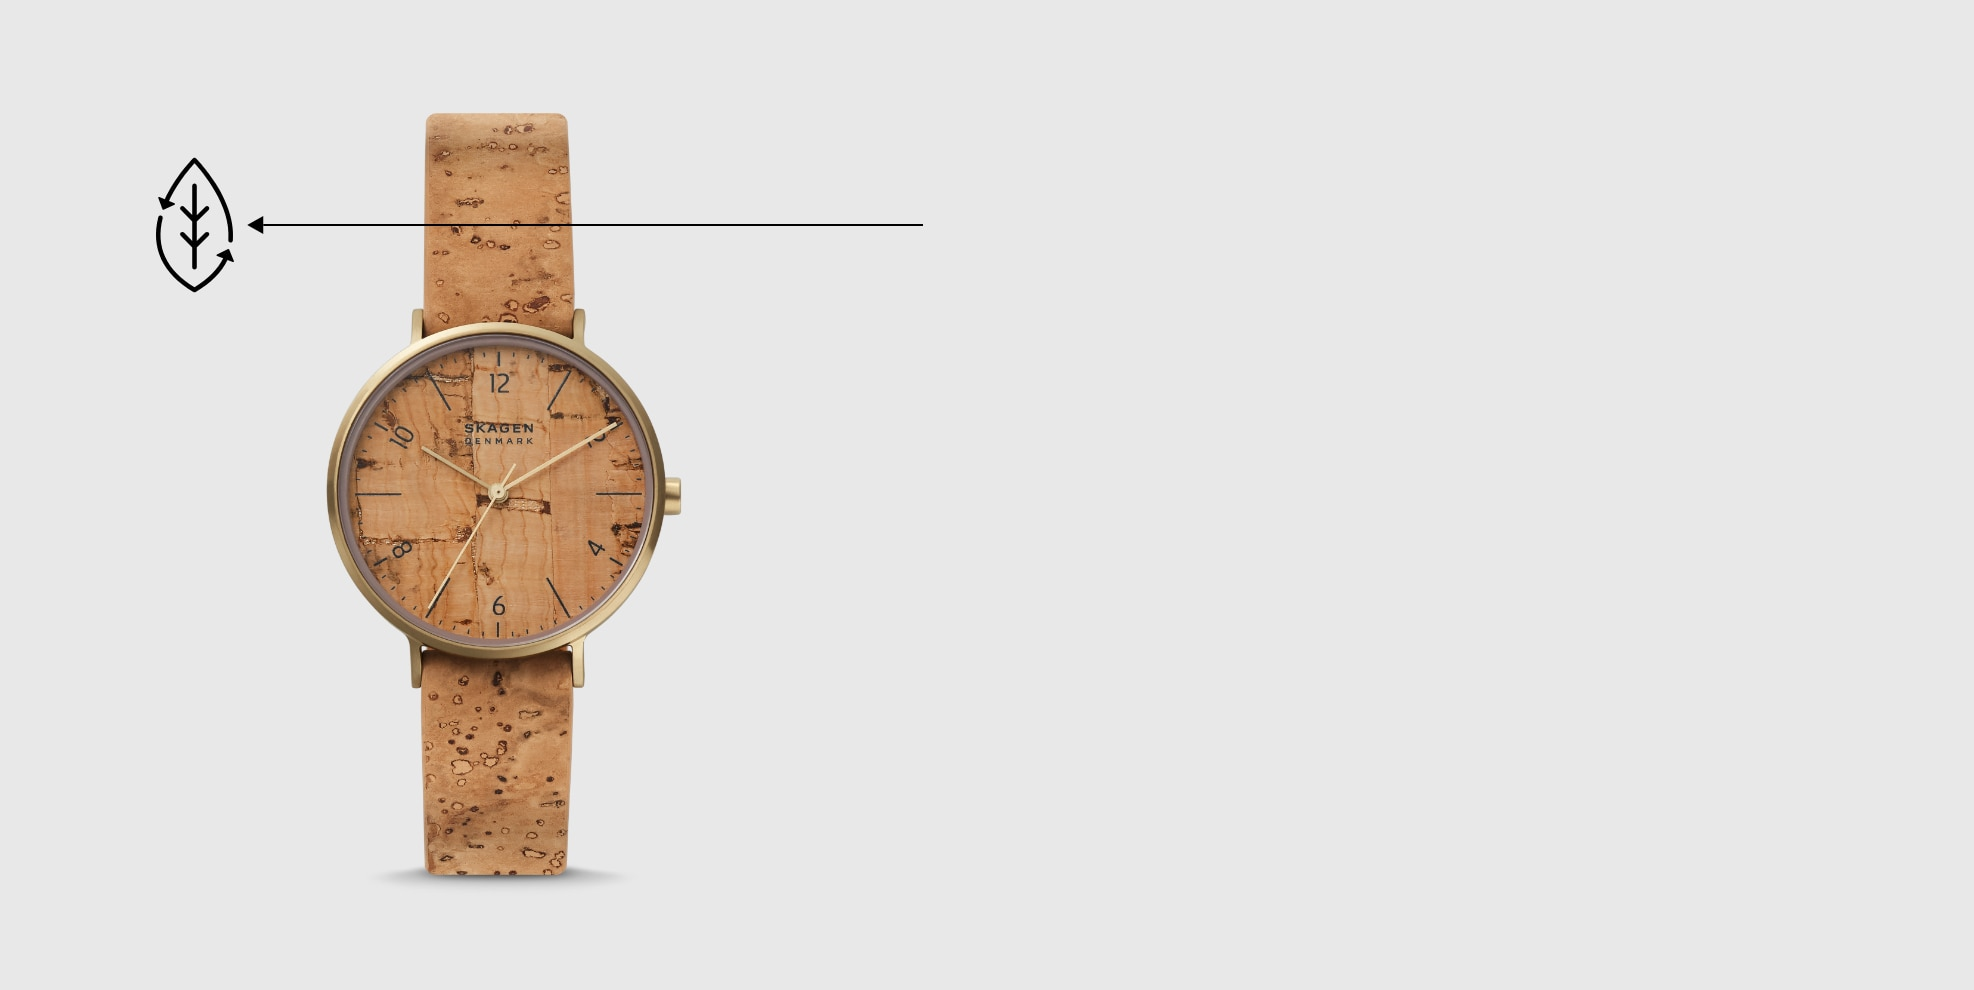 A planet-friendly watch made from cork.